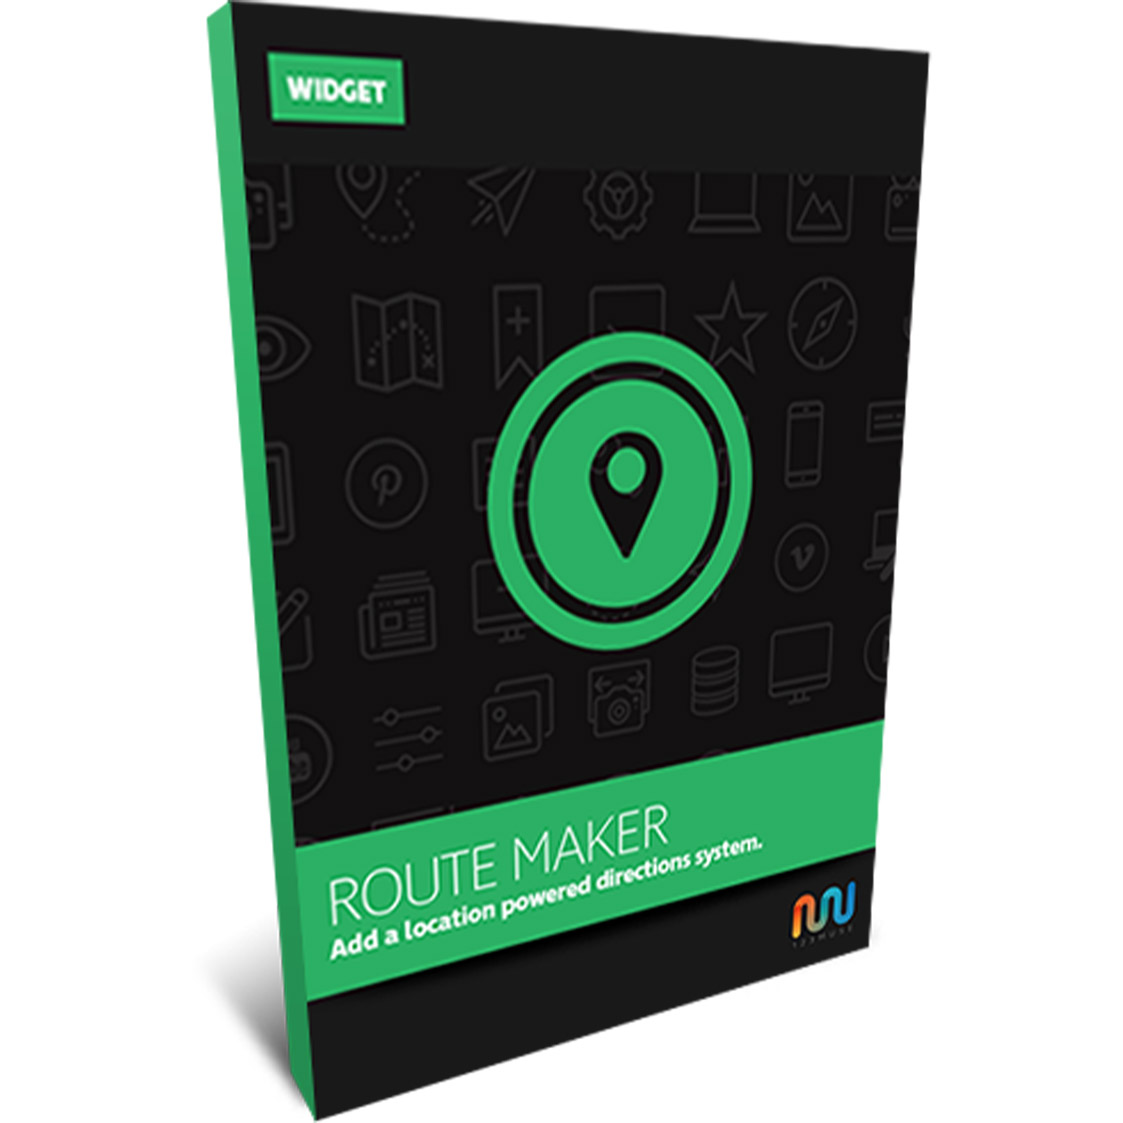 Route Maker